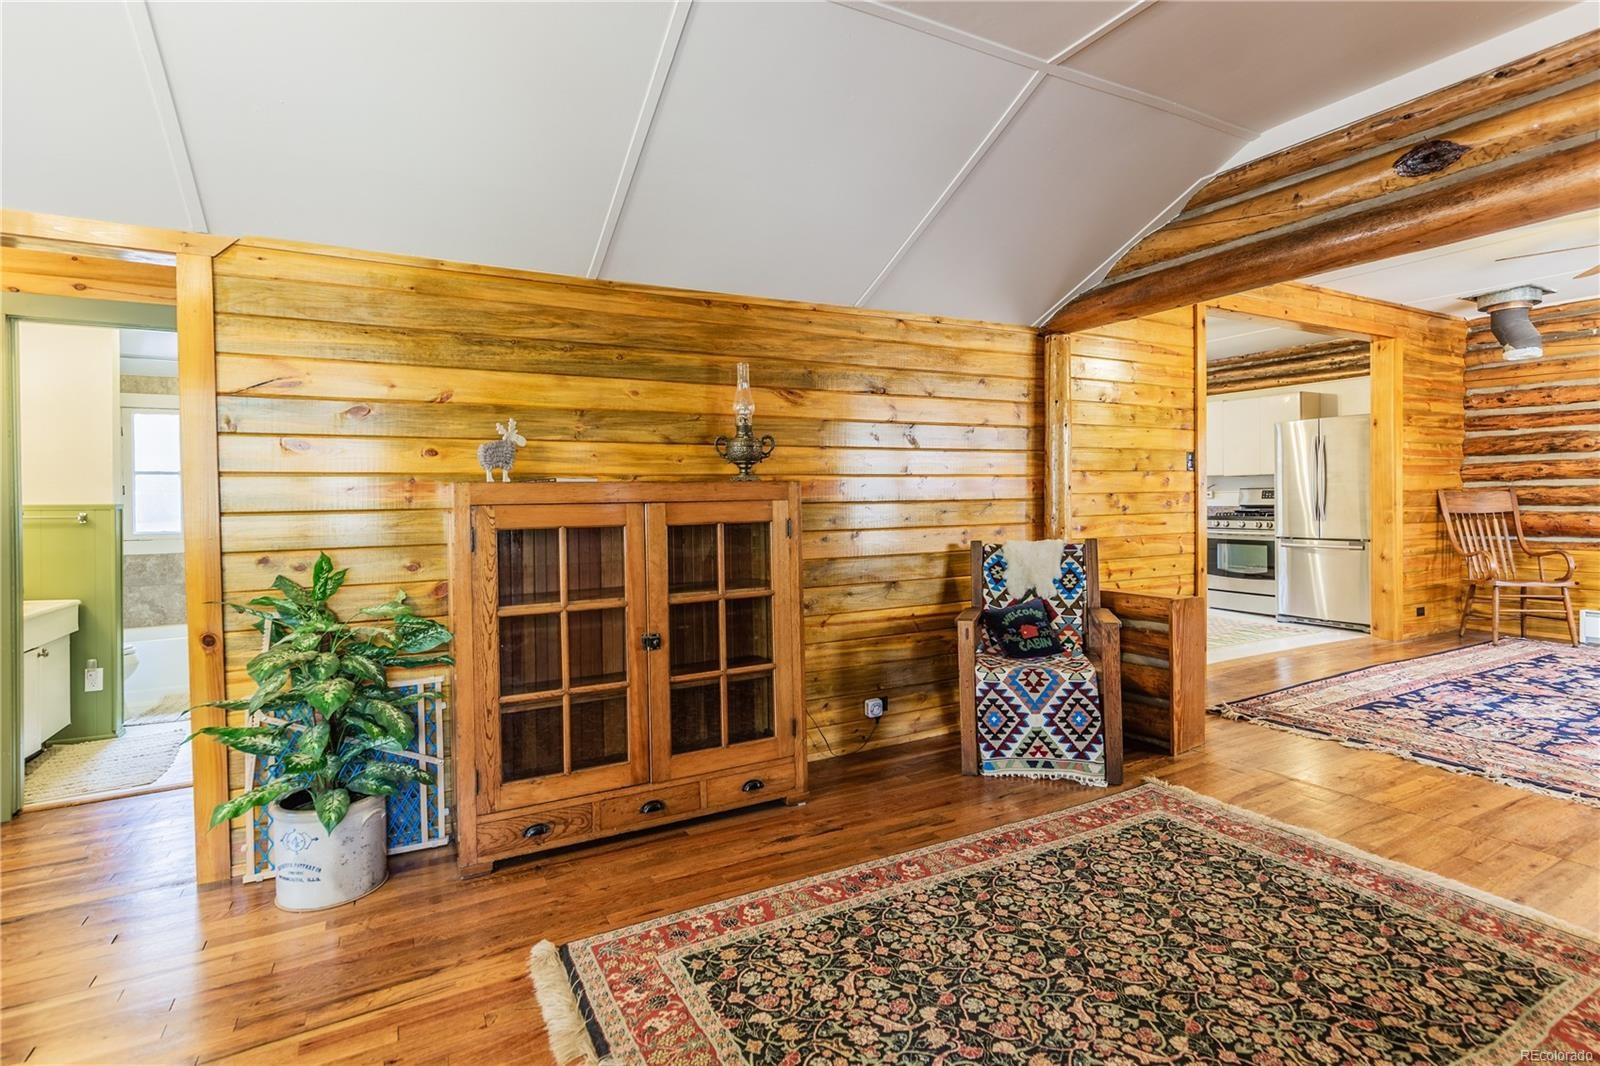 MLS# 3100431 - 7 - 15827 Old Stagecoach Road, Pine, CO 80470